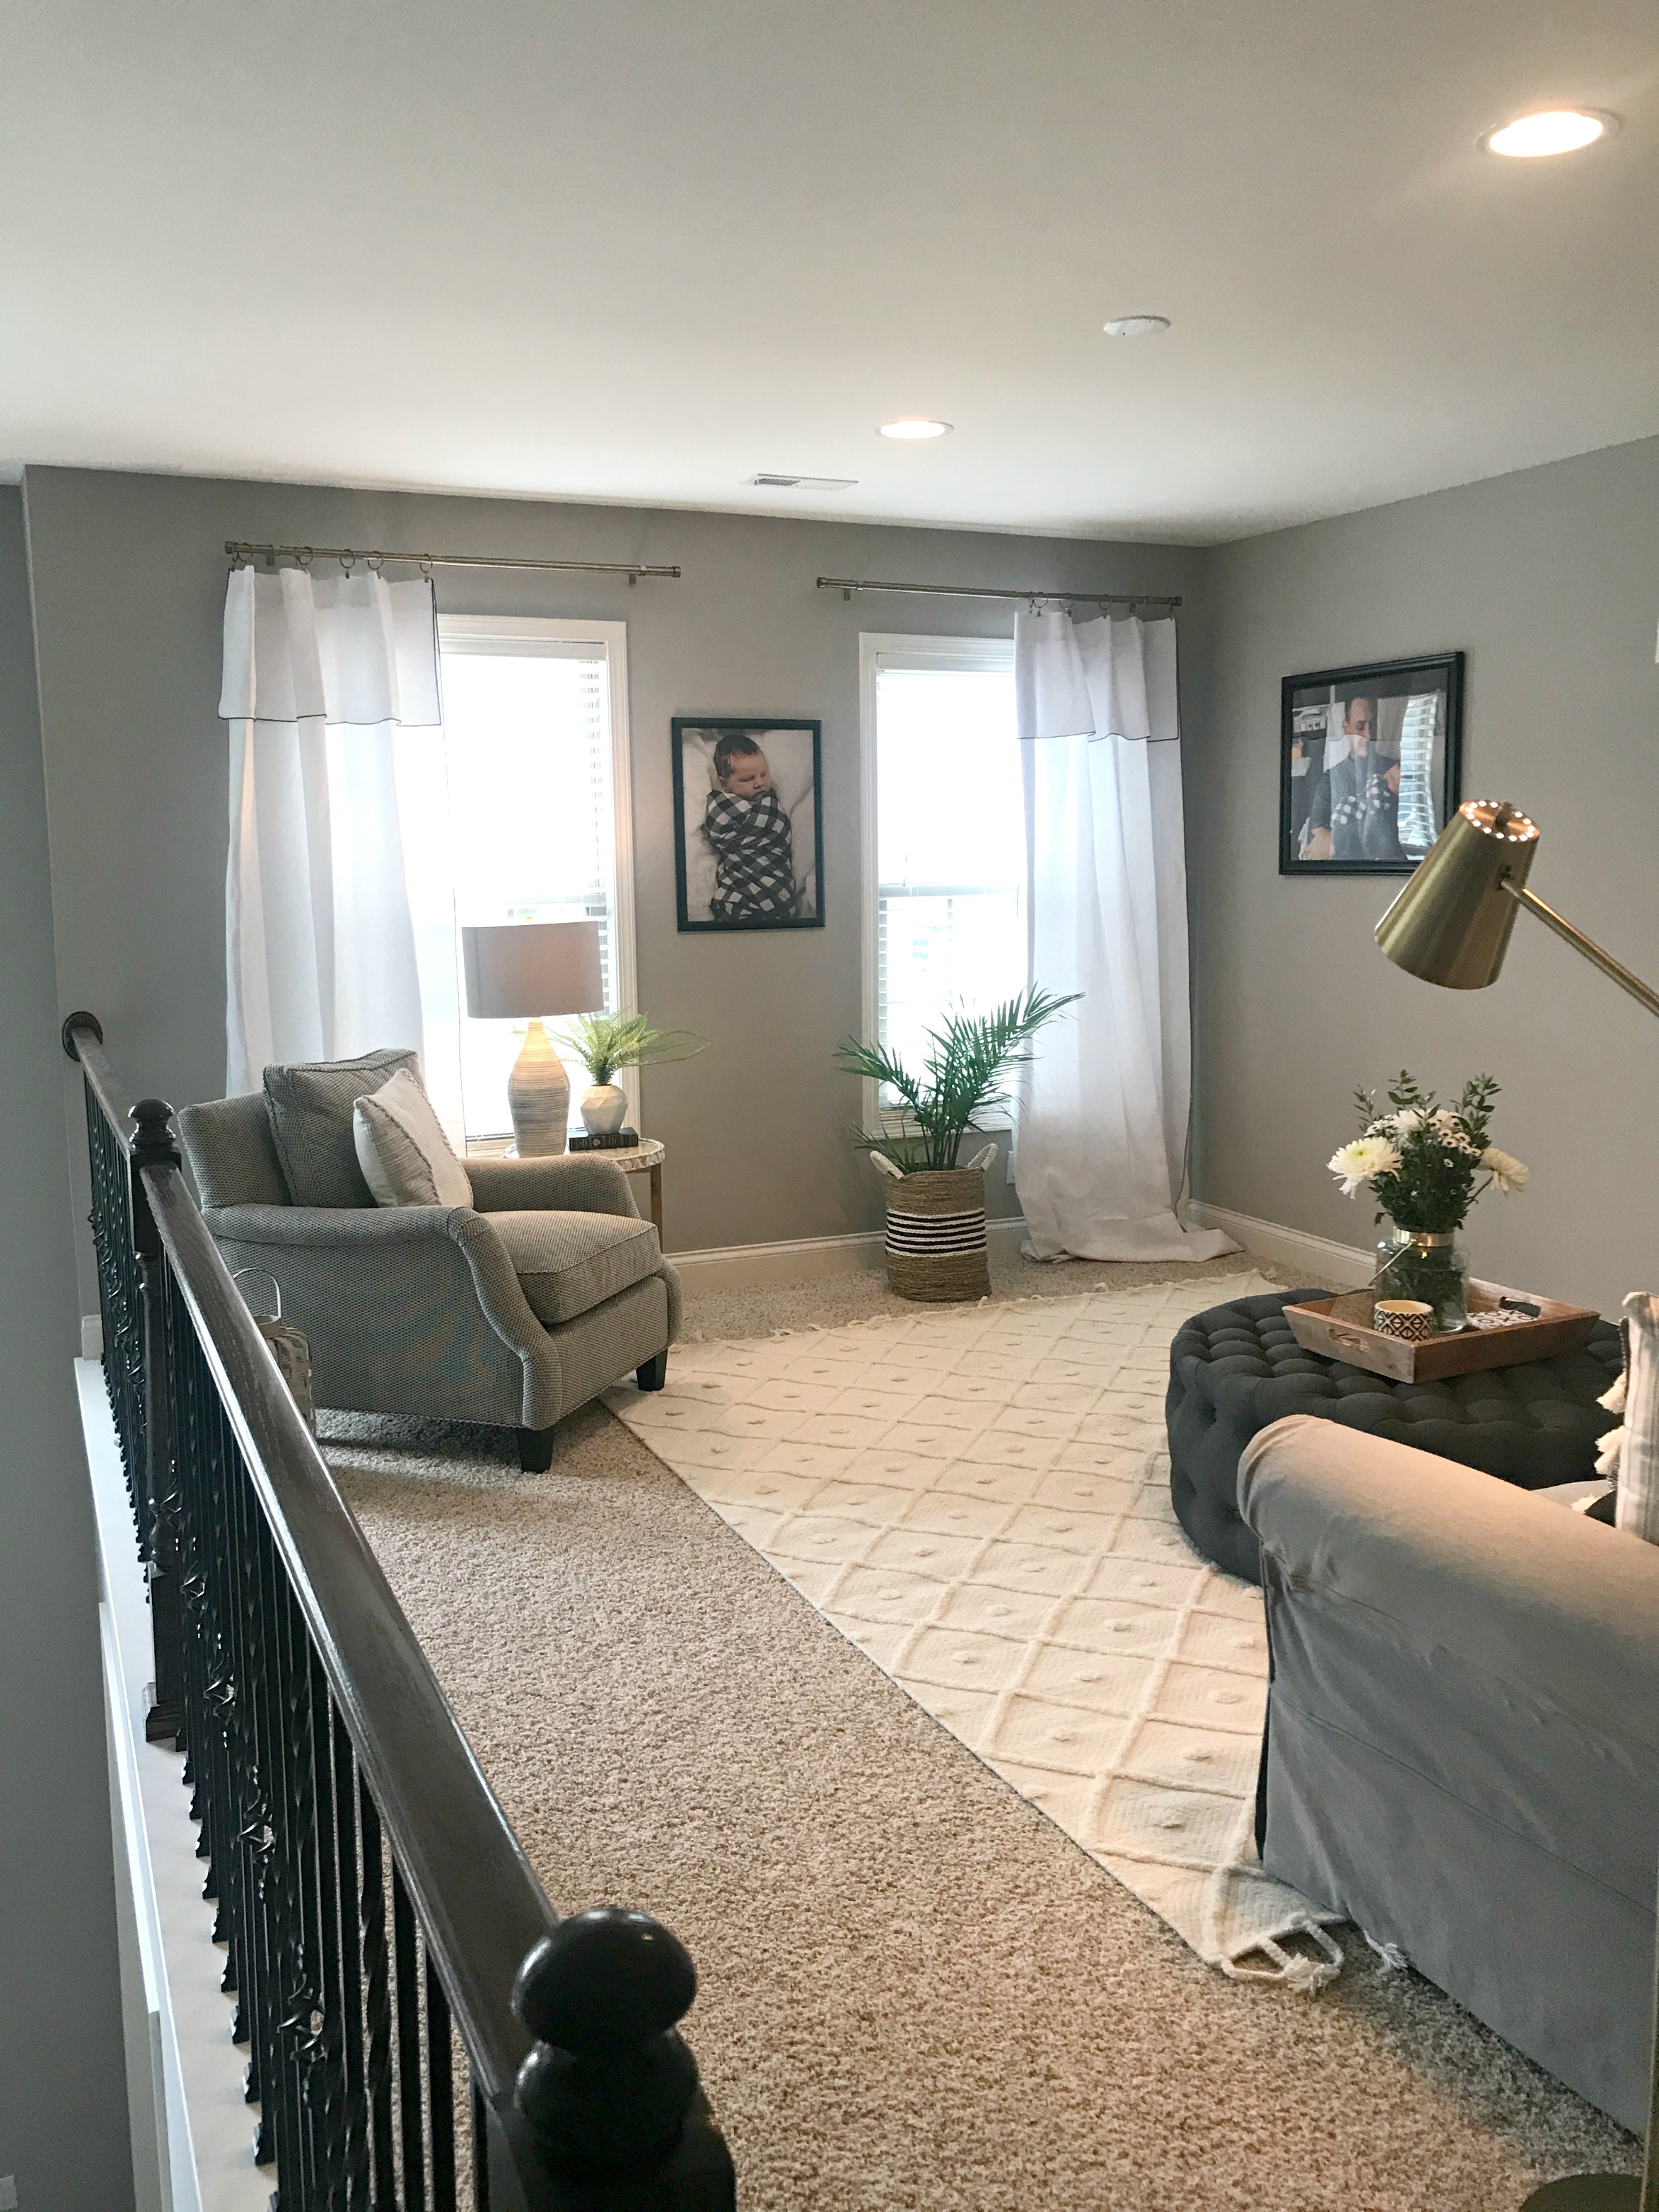 curtain rods  |  curtains   | chair- Arhaus  | frames-  At Home  | basket-  Homegoods  |  rug